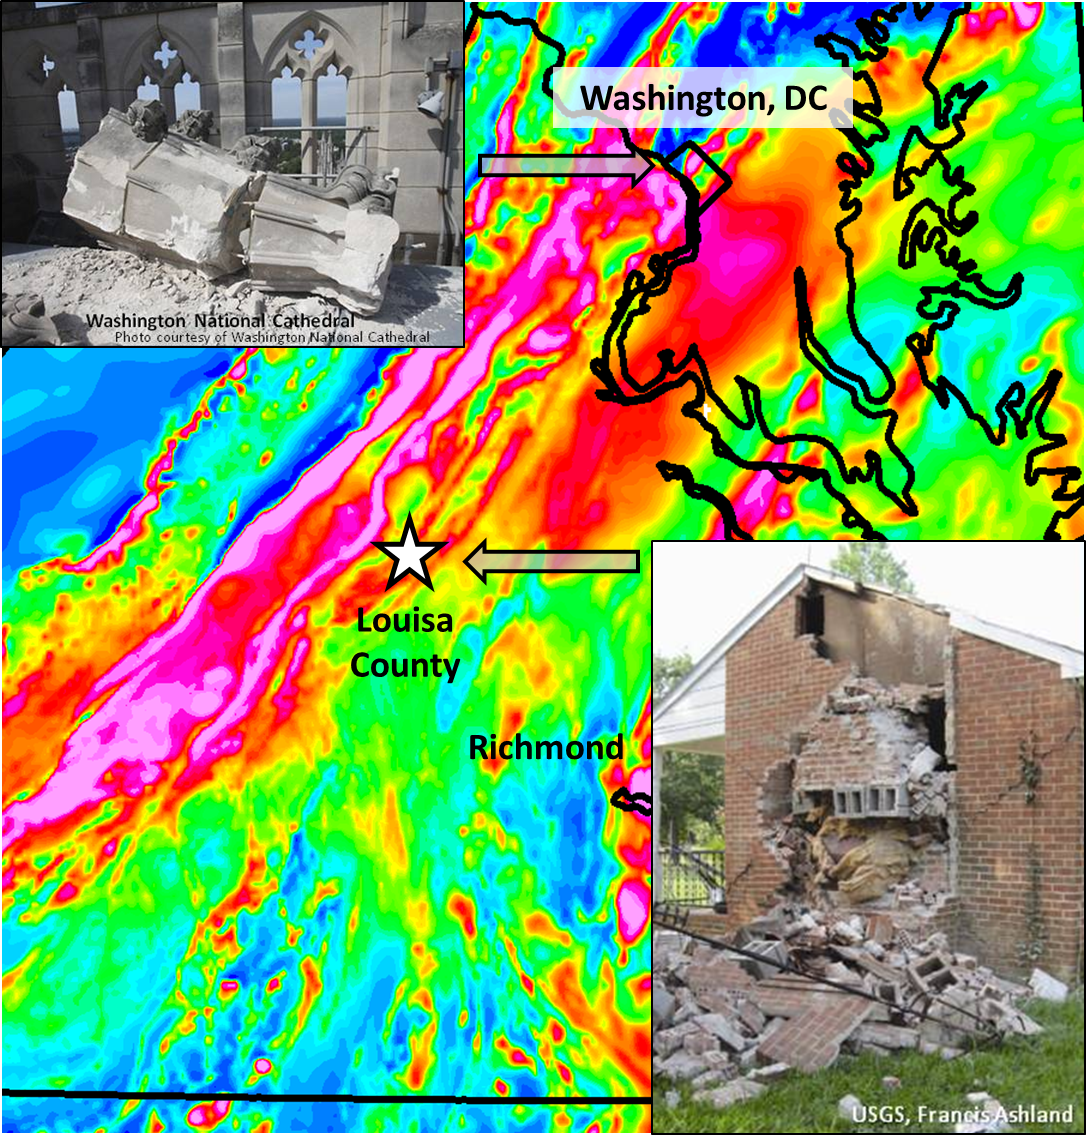 Virginia's magnetic field shows anomalies extending from the earthquake epicenter (star) towards Washington D.C.  Buildings in both Louisa County (lower inset) and Washington D.C. (upper inset) suffered significant damage.  High-resolution airborne geophysical surveys will image the causative fault.